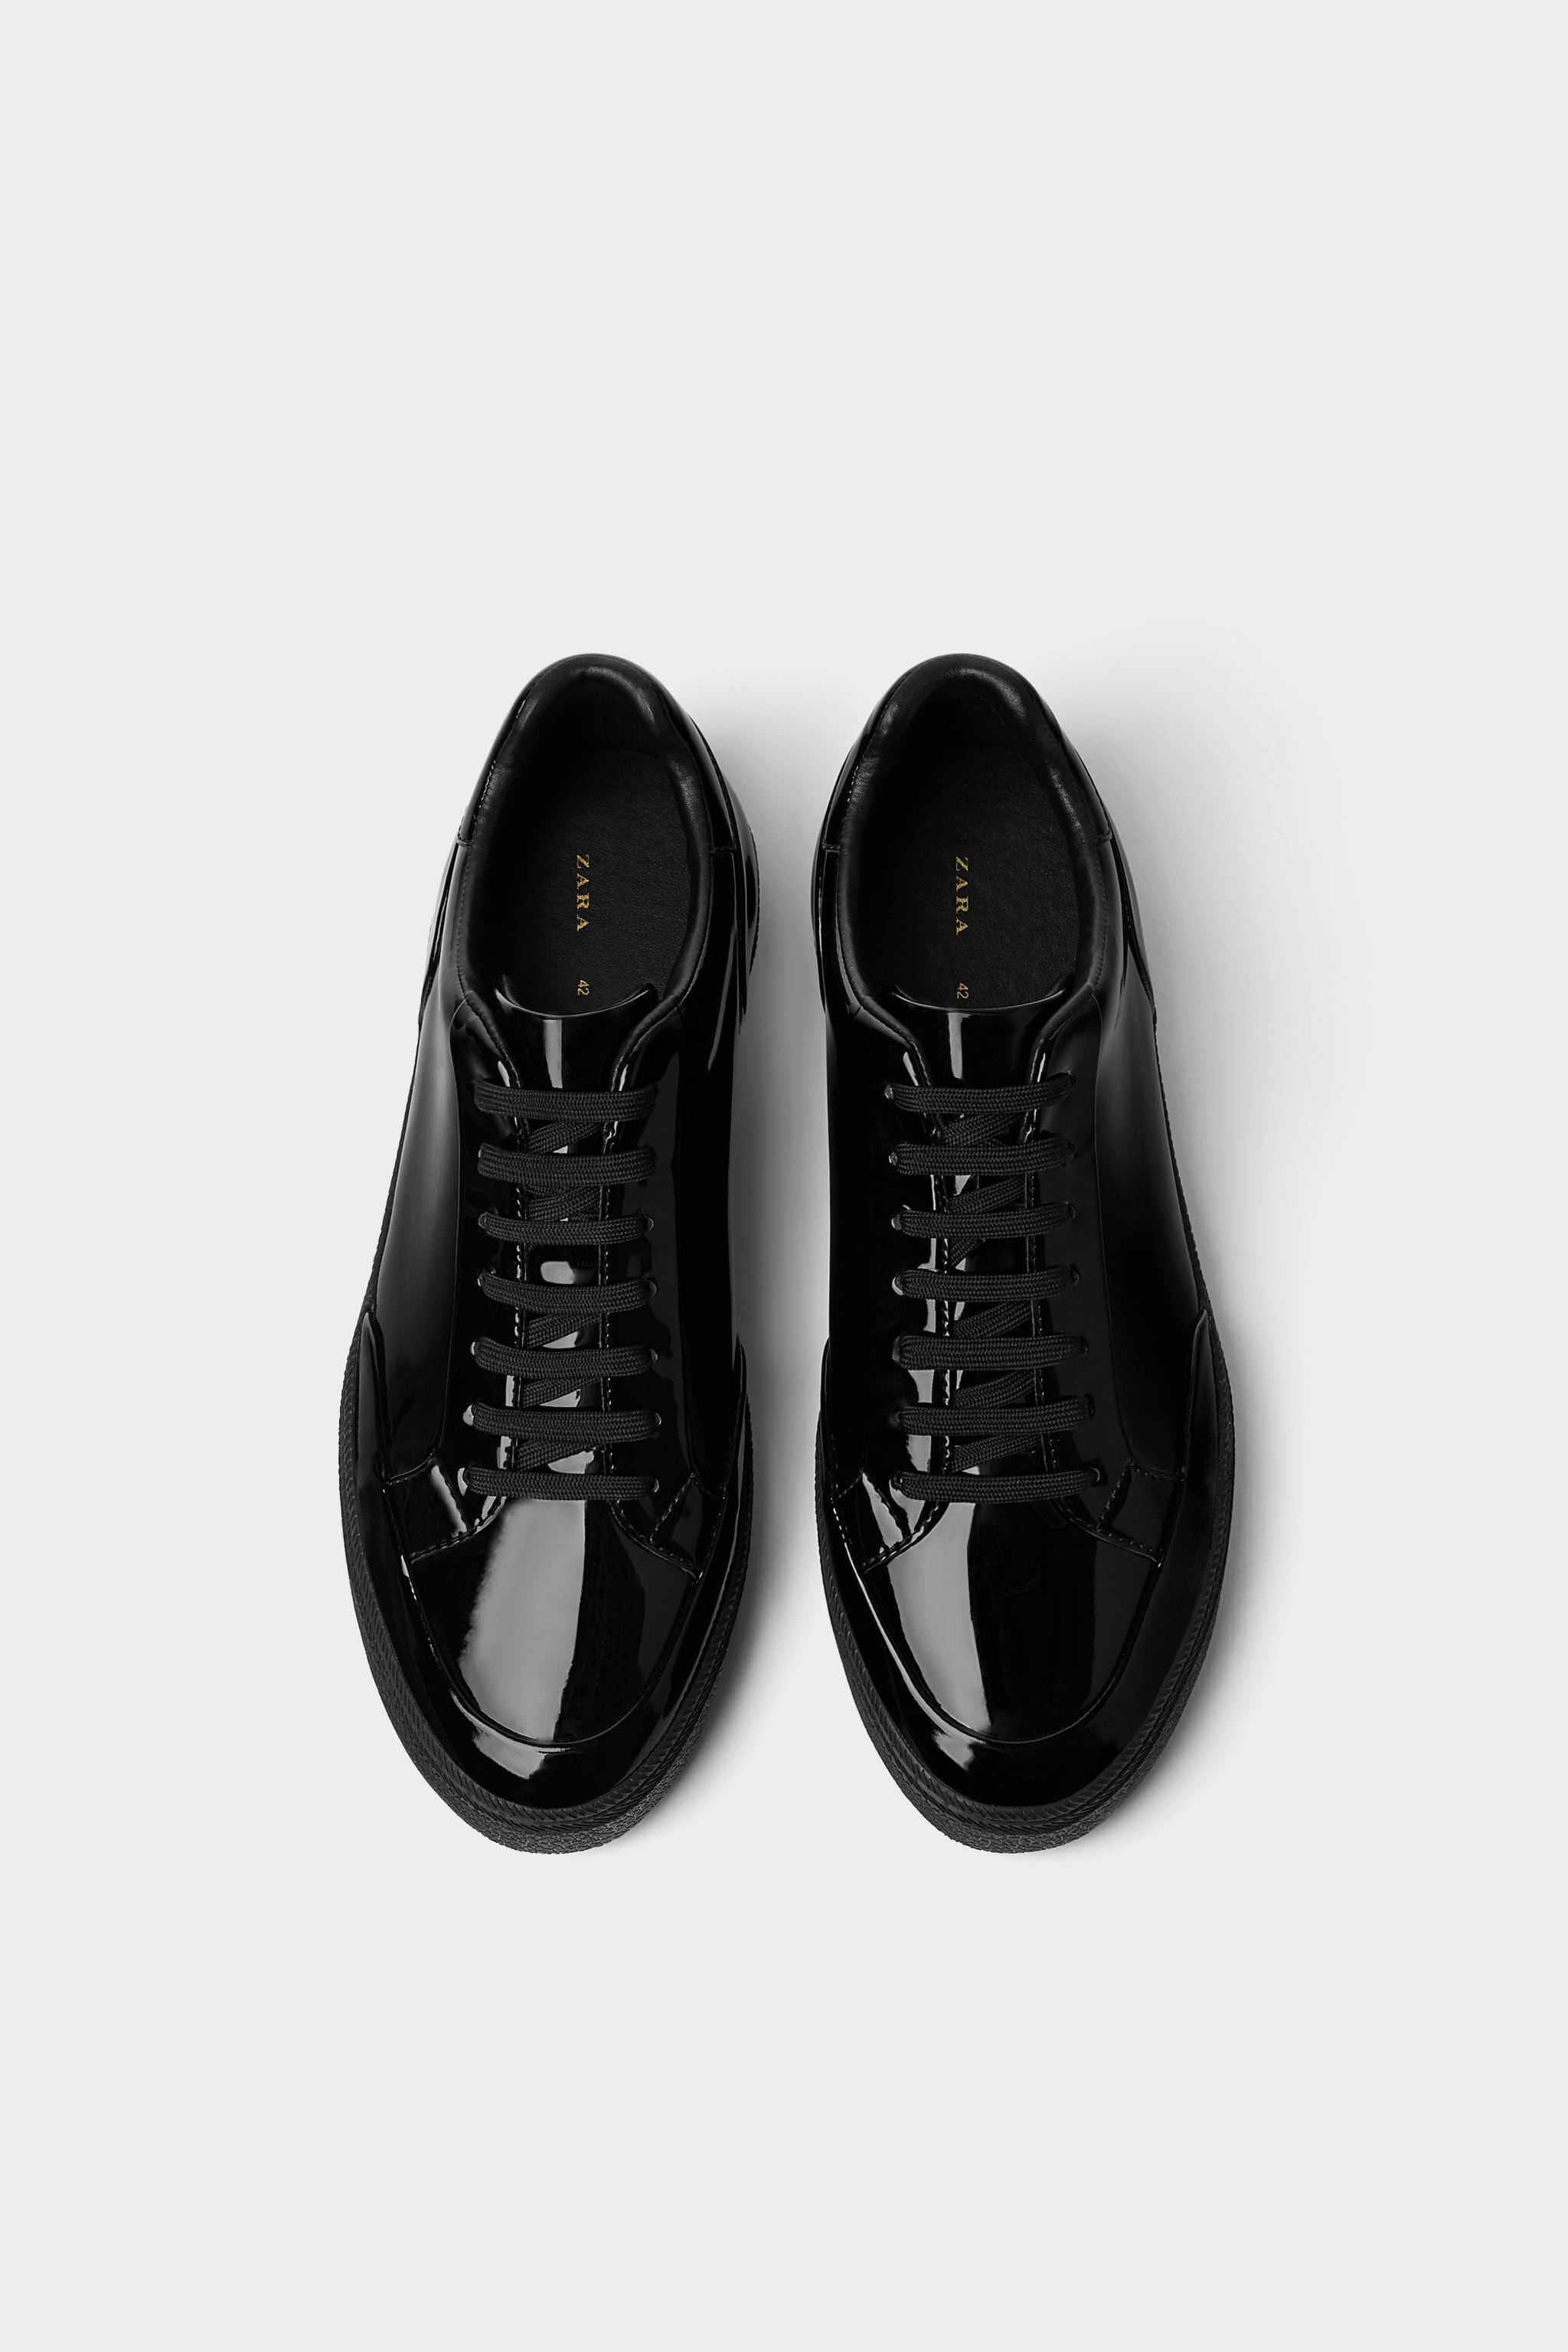 6d6cd339f4db Zara BLACK PATENT FINISH SNEAKERS